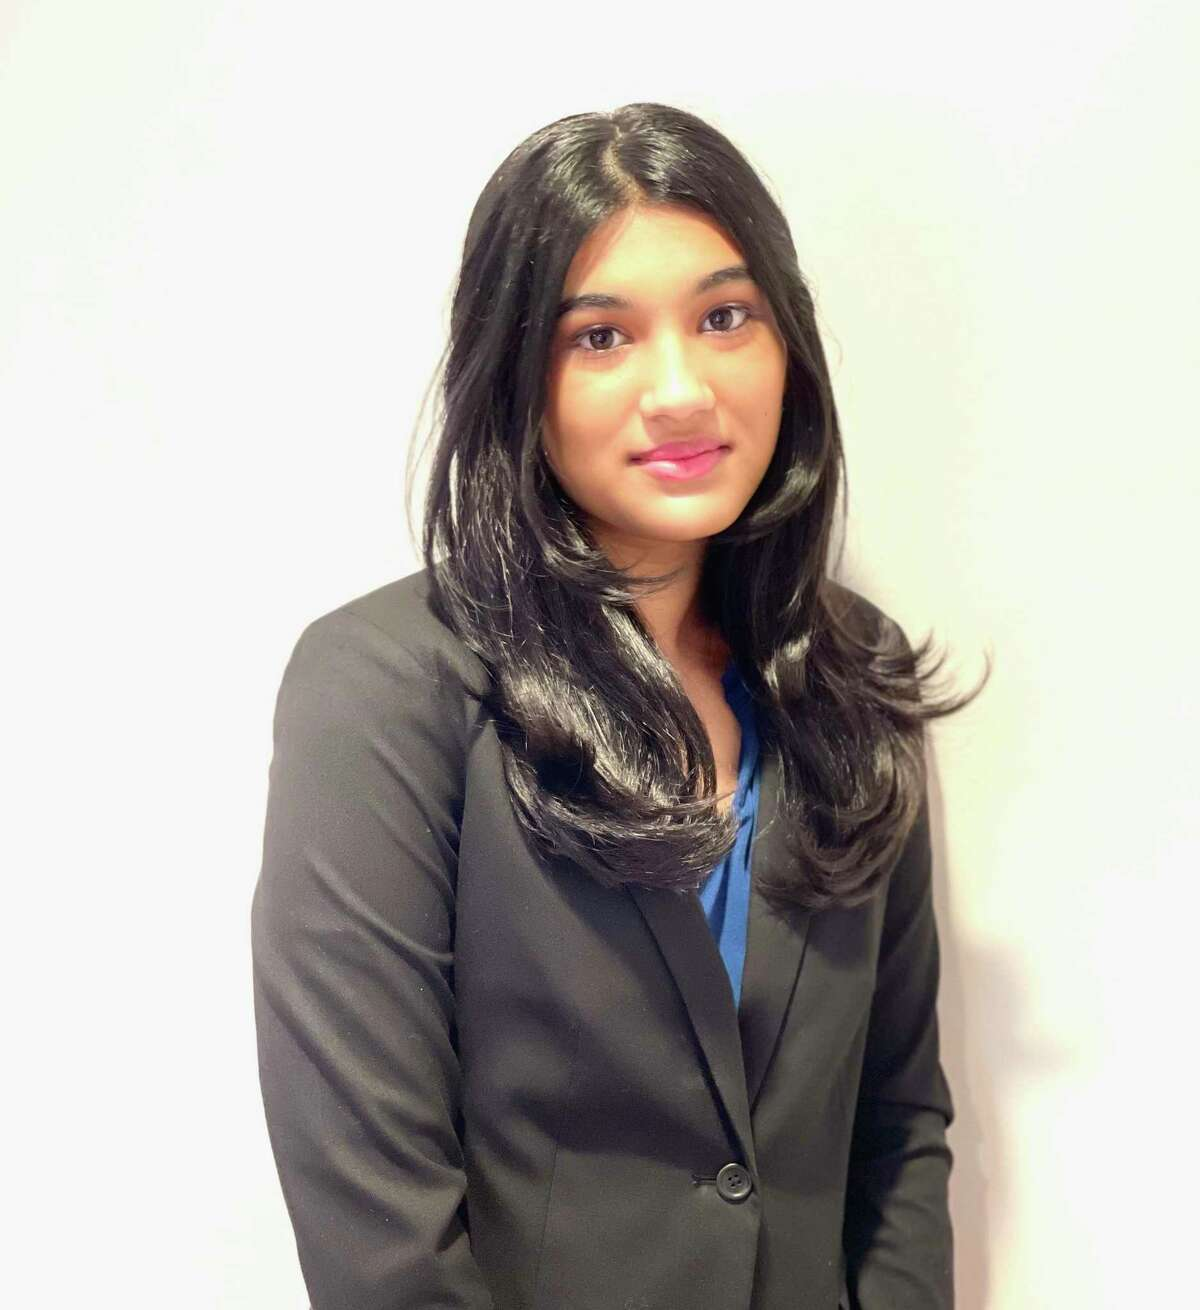 Darien High School Senior Student, Rhea Bhat, has been elected for the second year to SADD 's (Students Against Destructive Decisions) National Student Leadership Council.